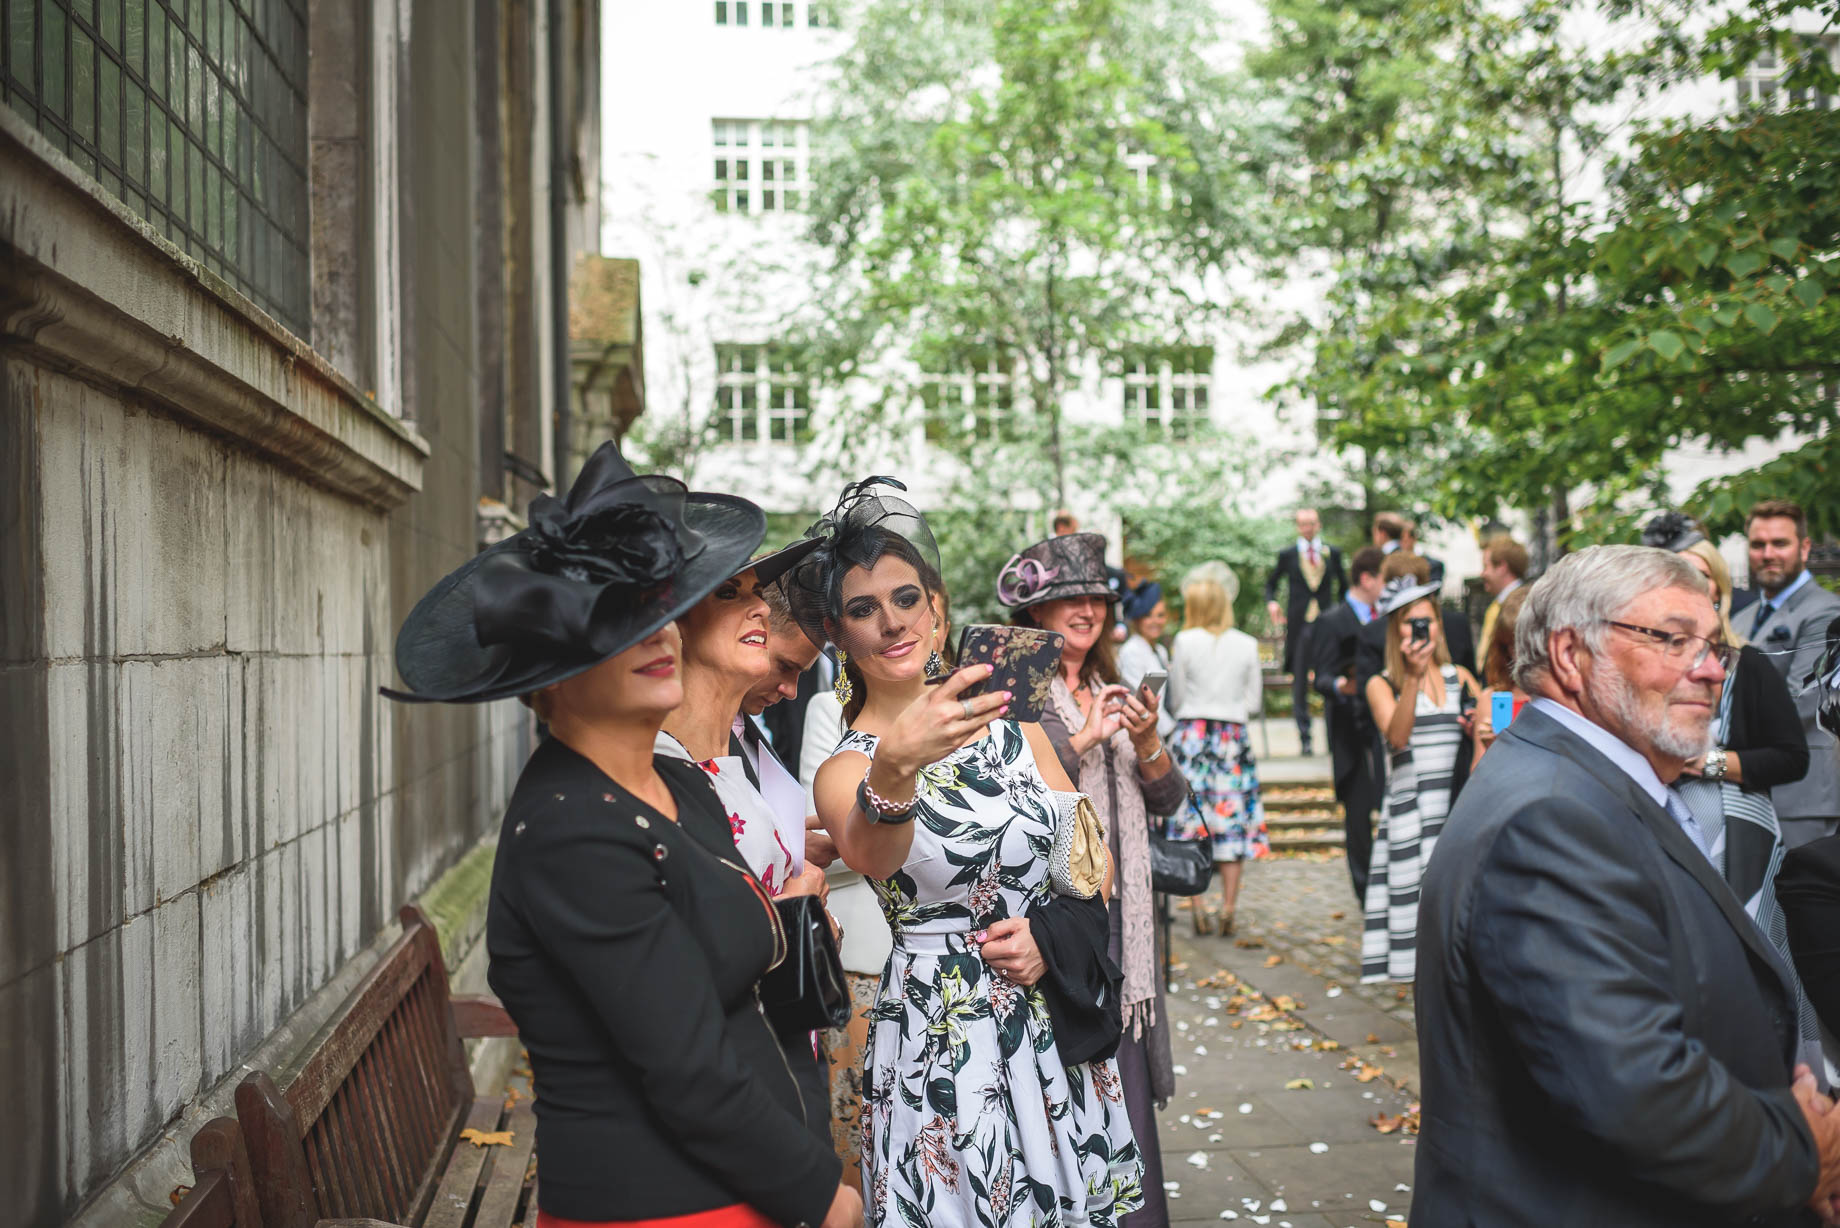 Shoreditch wedding photography - Guy Collier - Kat and Henry (87 of 200)